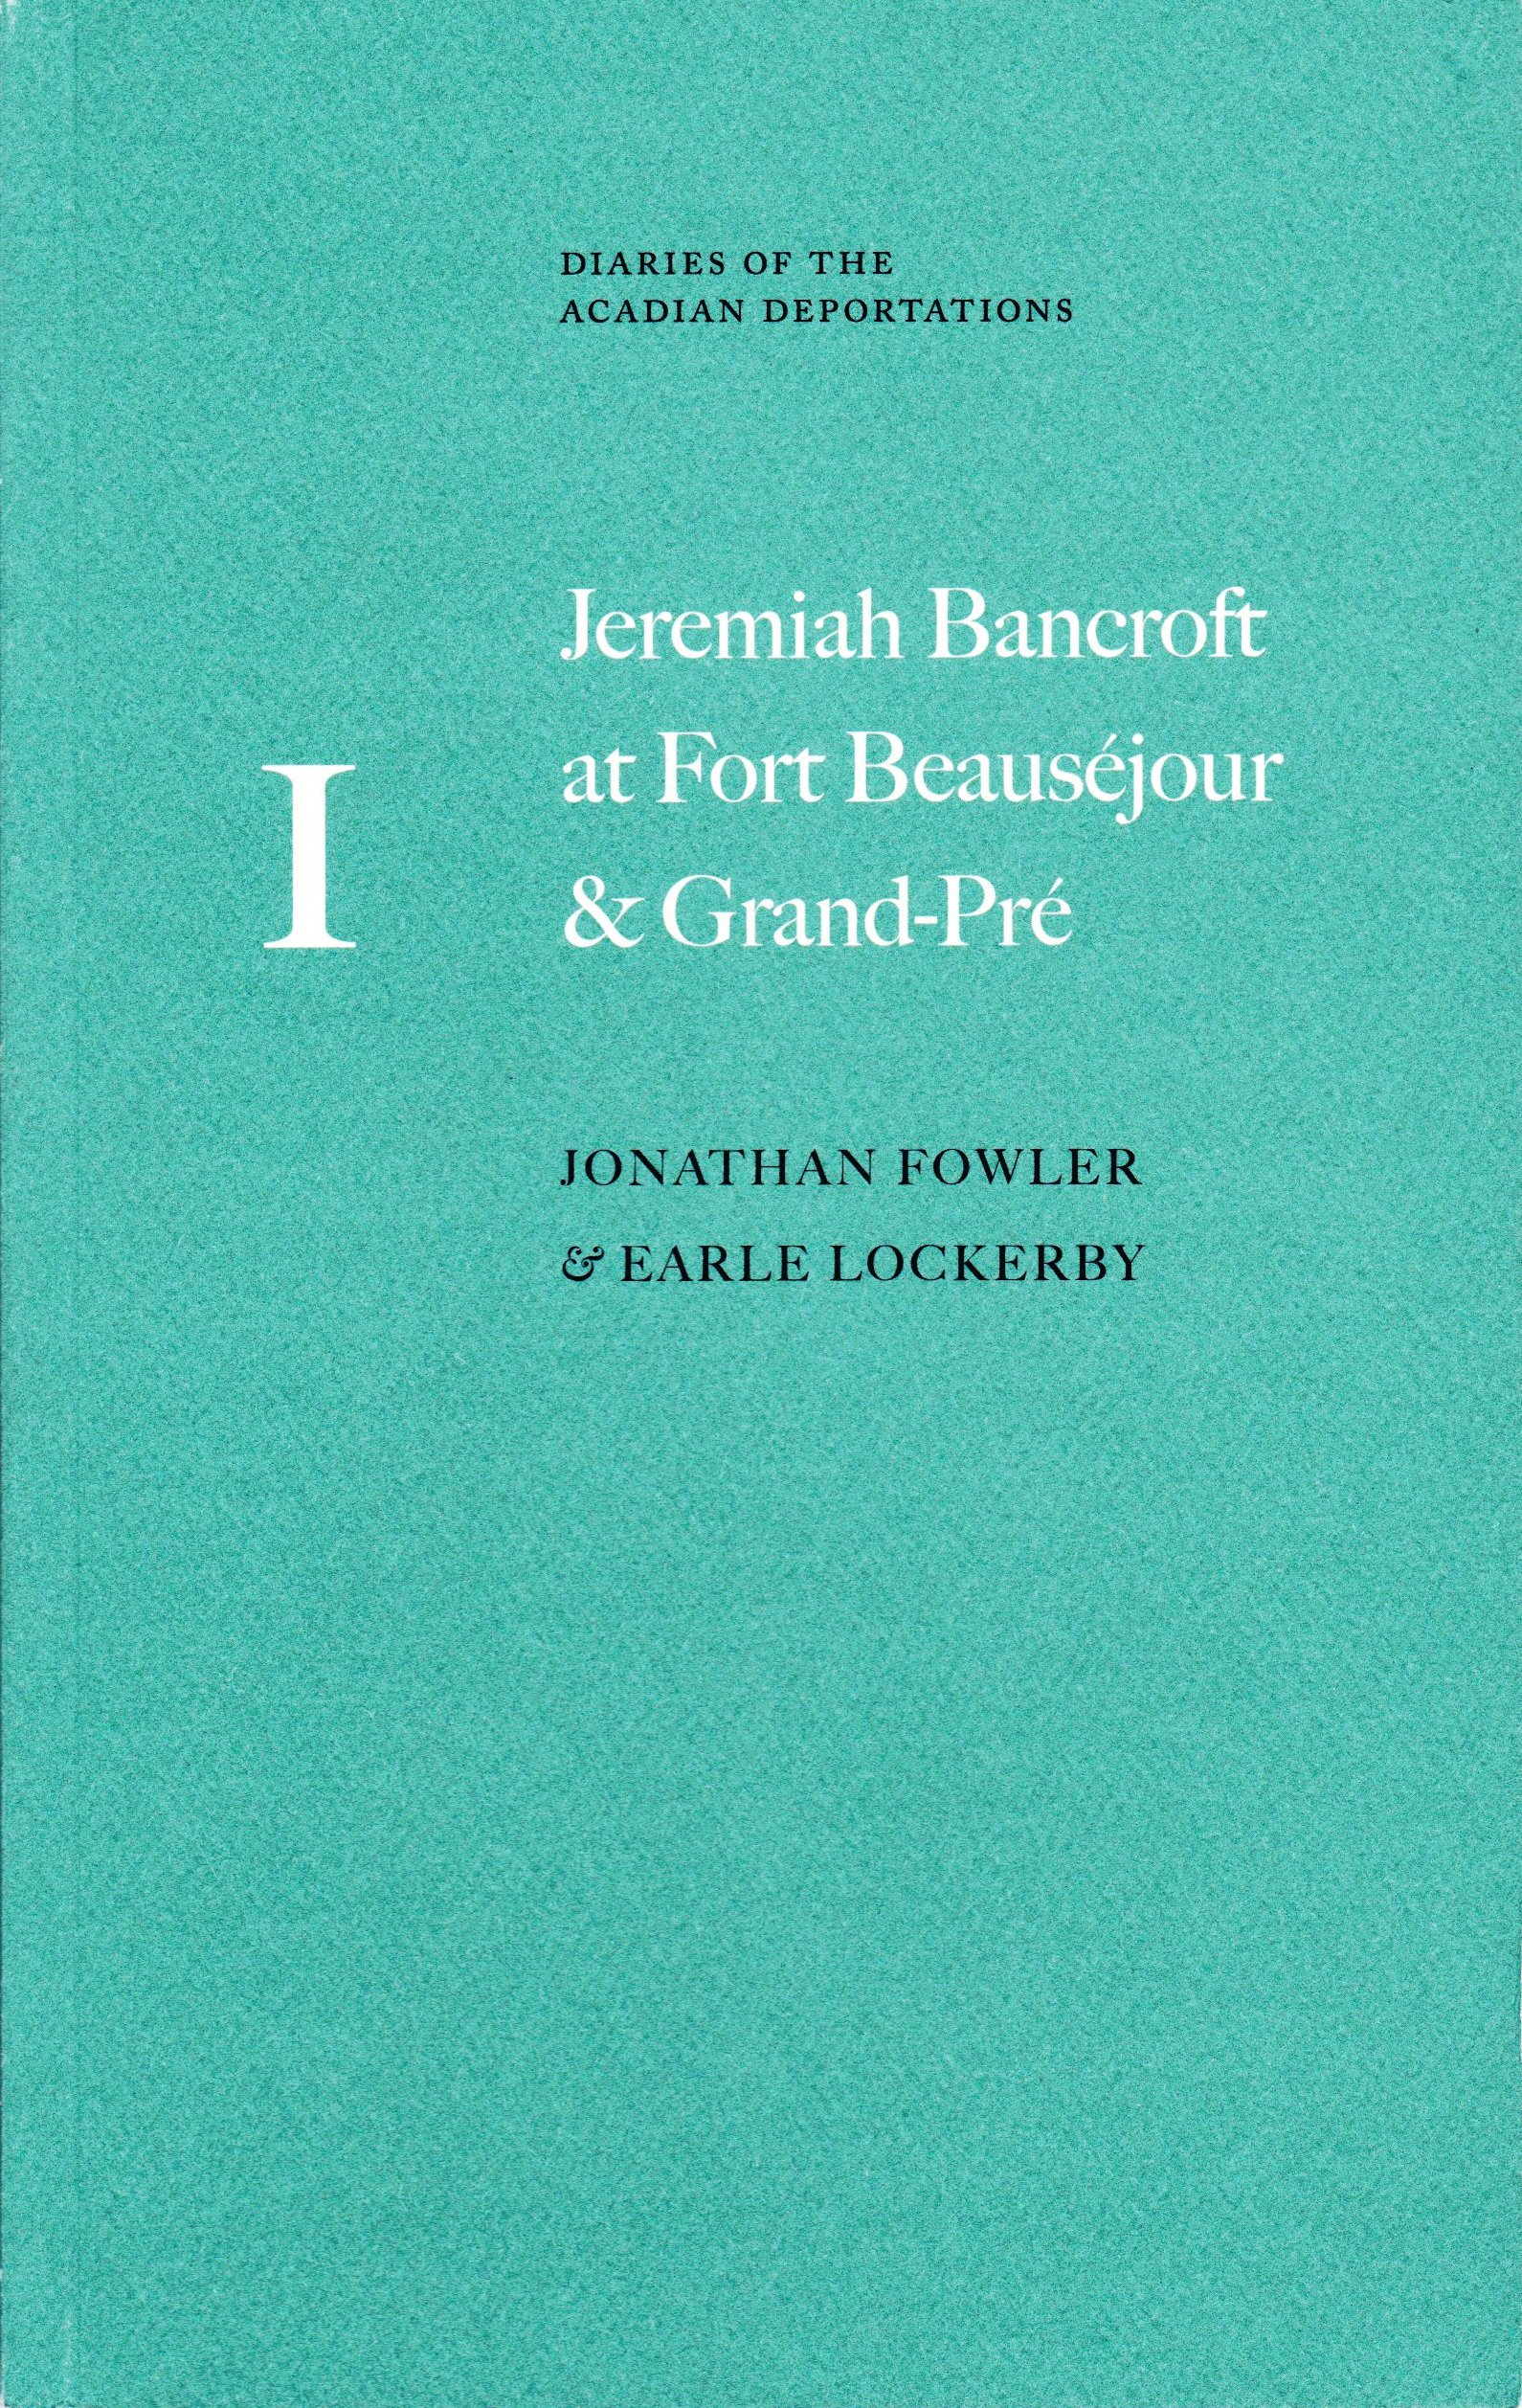 JEREMIAH BANCROFT AT FORT BEAUSEJOUR